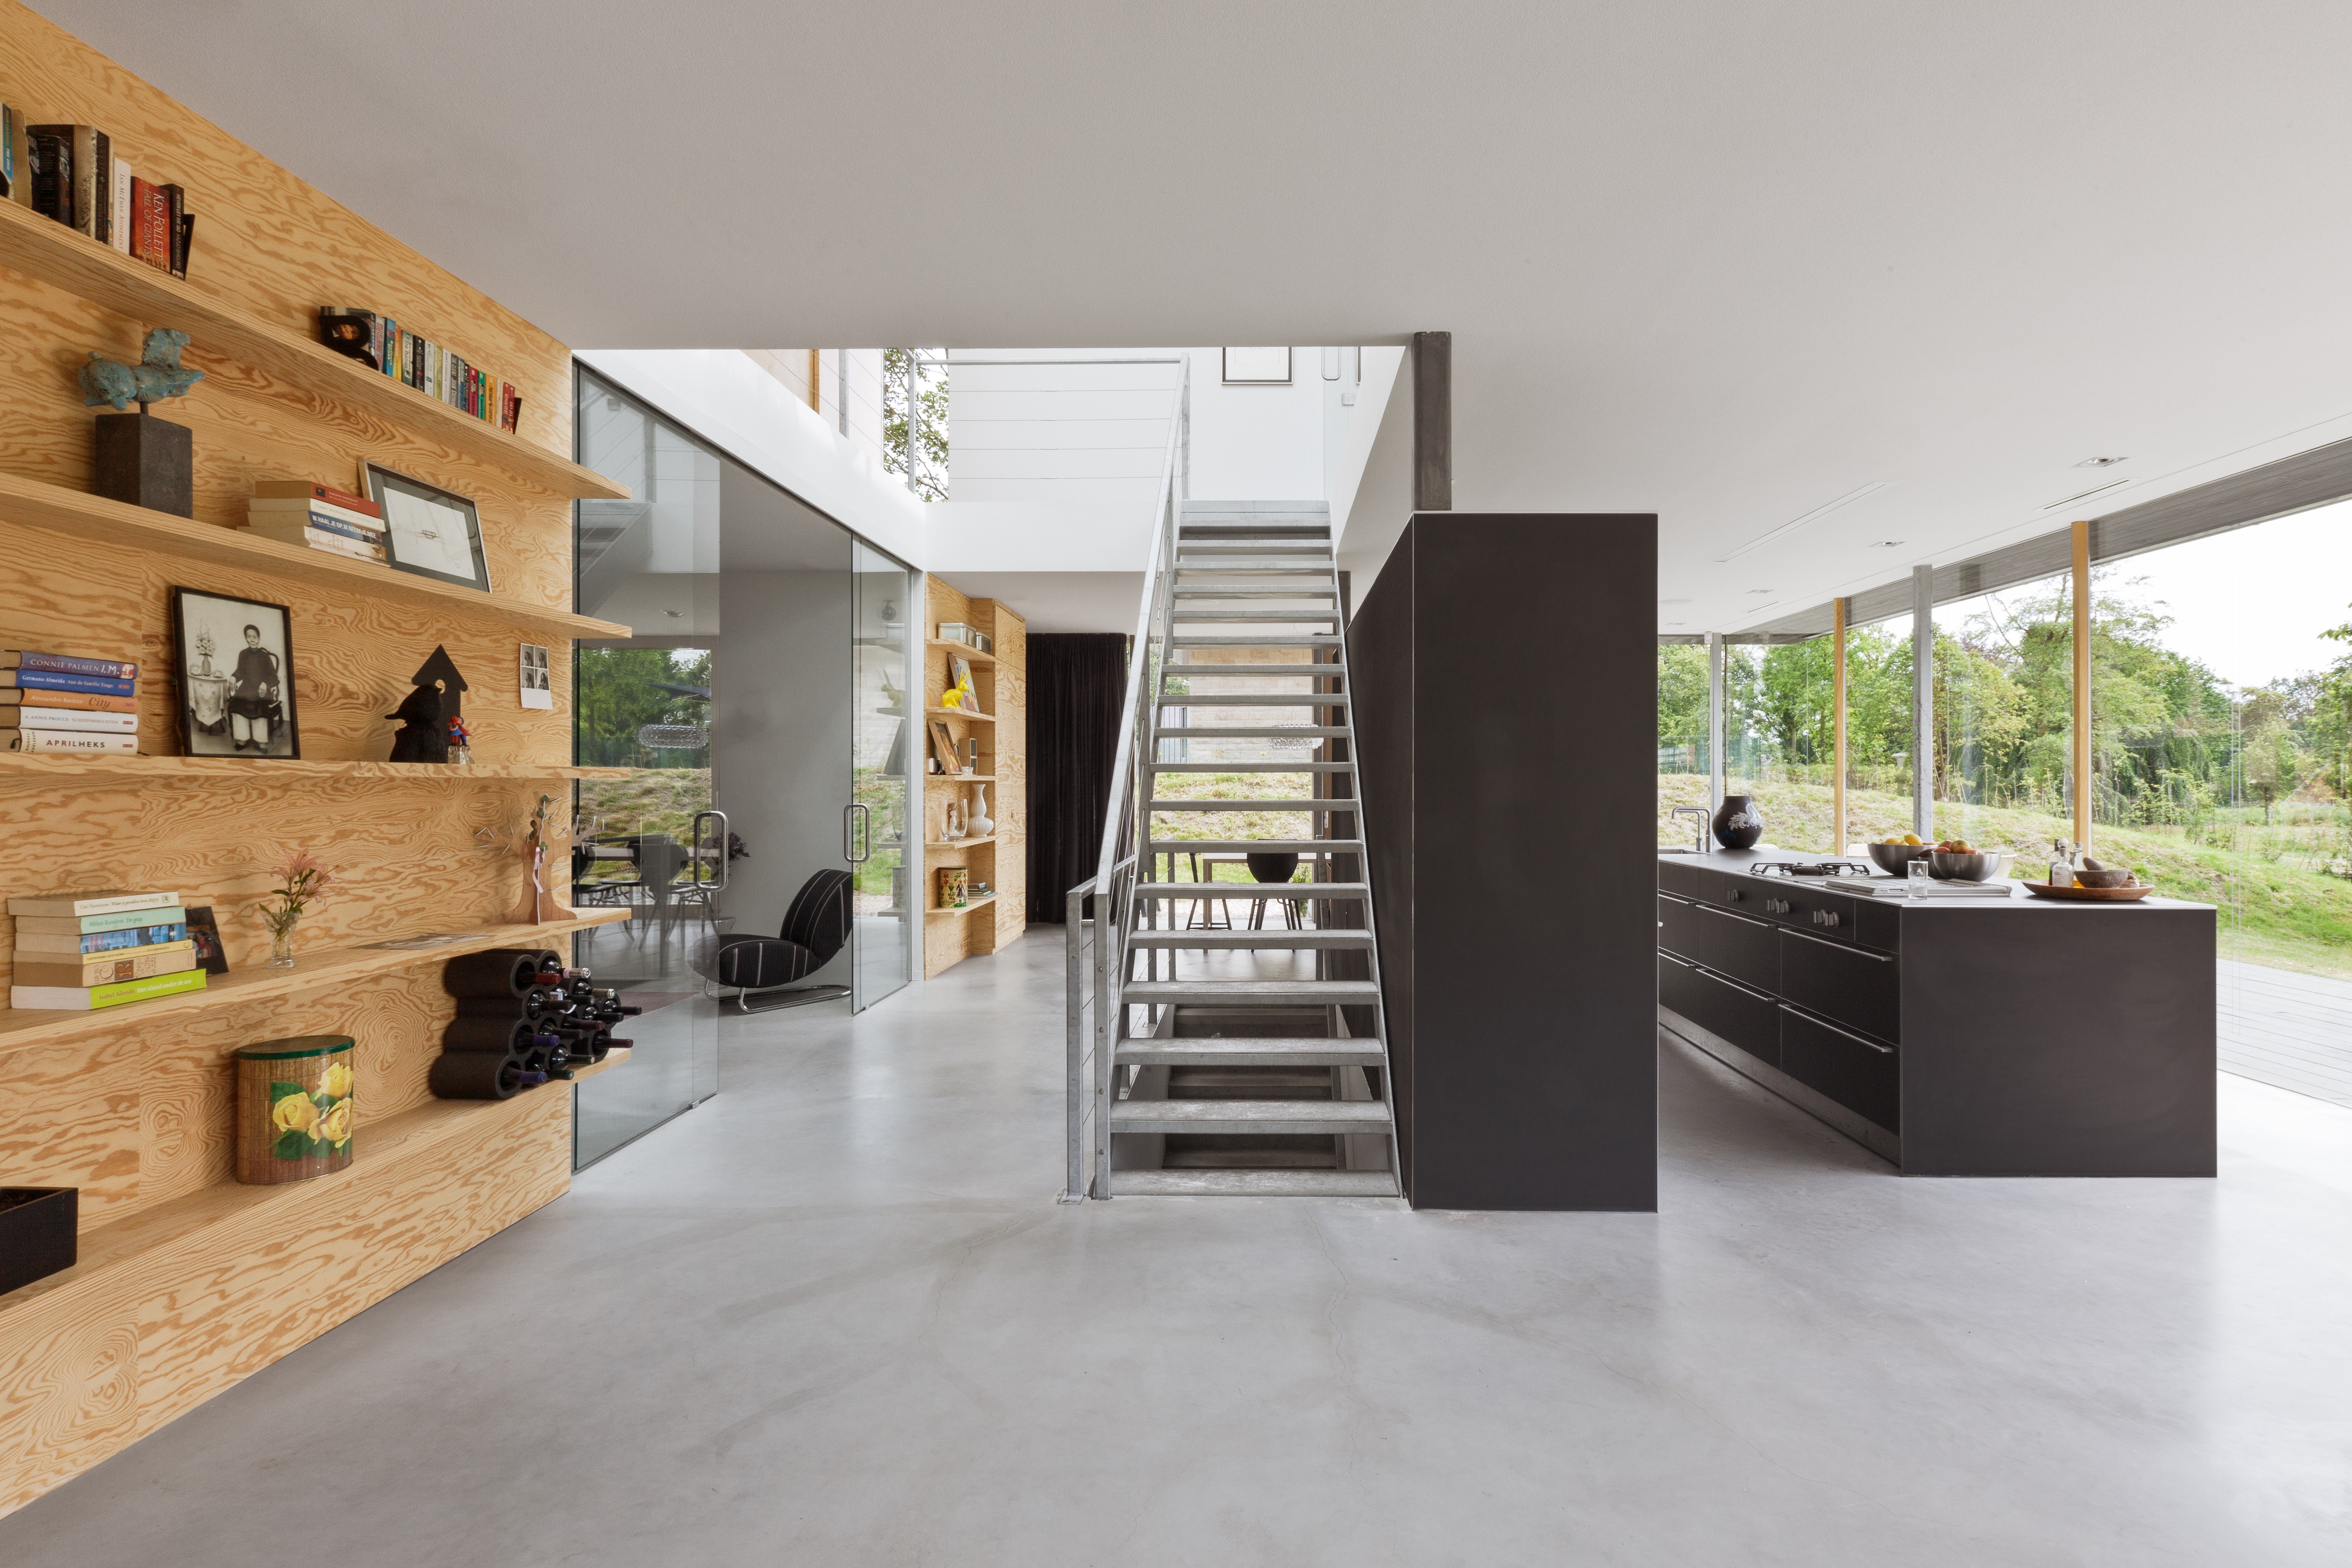 Minimalistische duurzame villa home09 van i29 interior architects en Paul de Ruiter architects